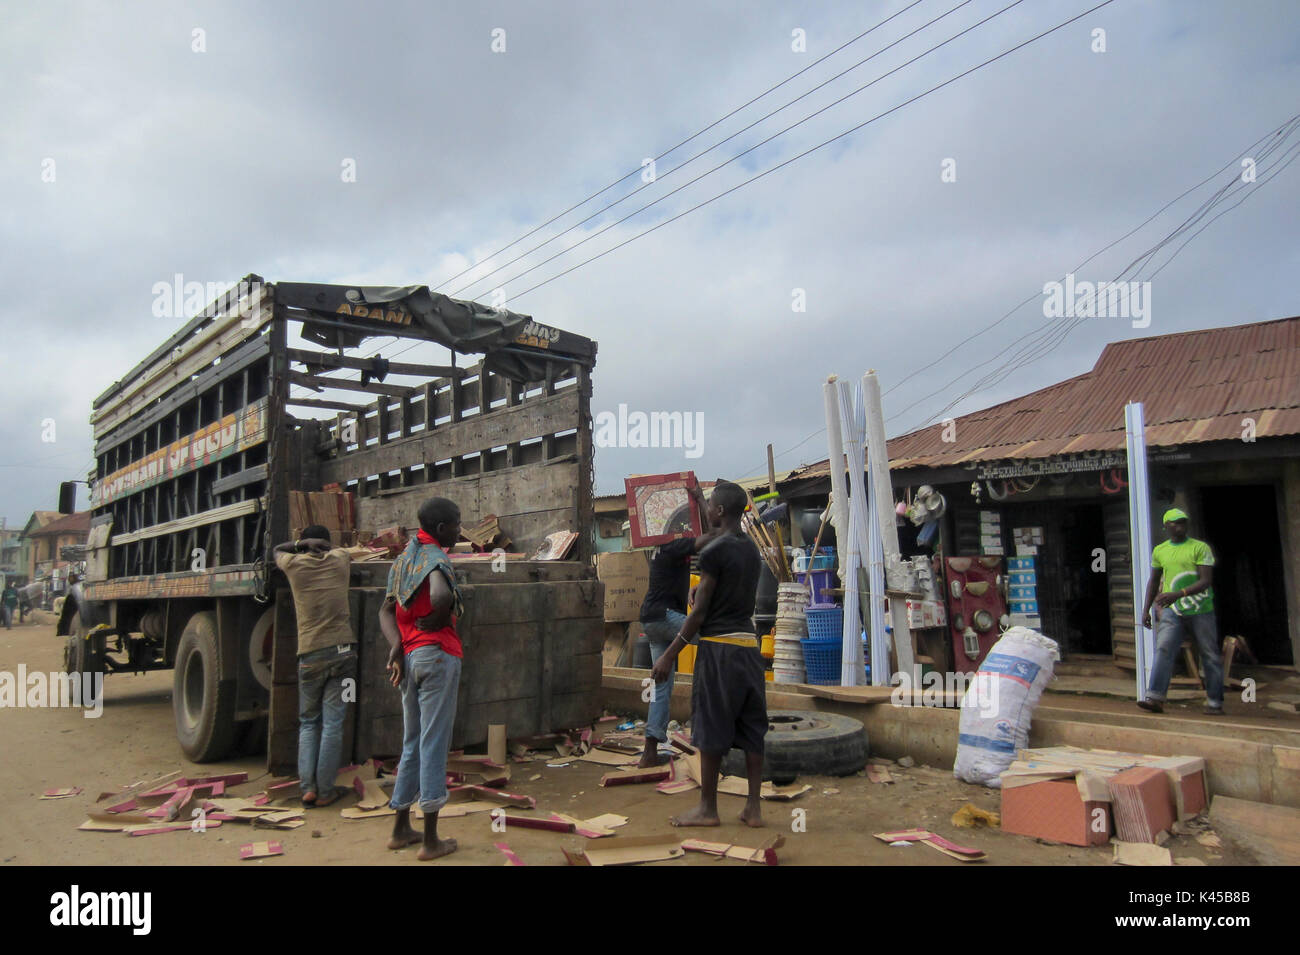 Some boys in the street next to an old wooden truck in the large city of Lagos, Nigeria - Stock Image